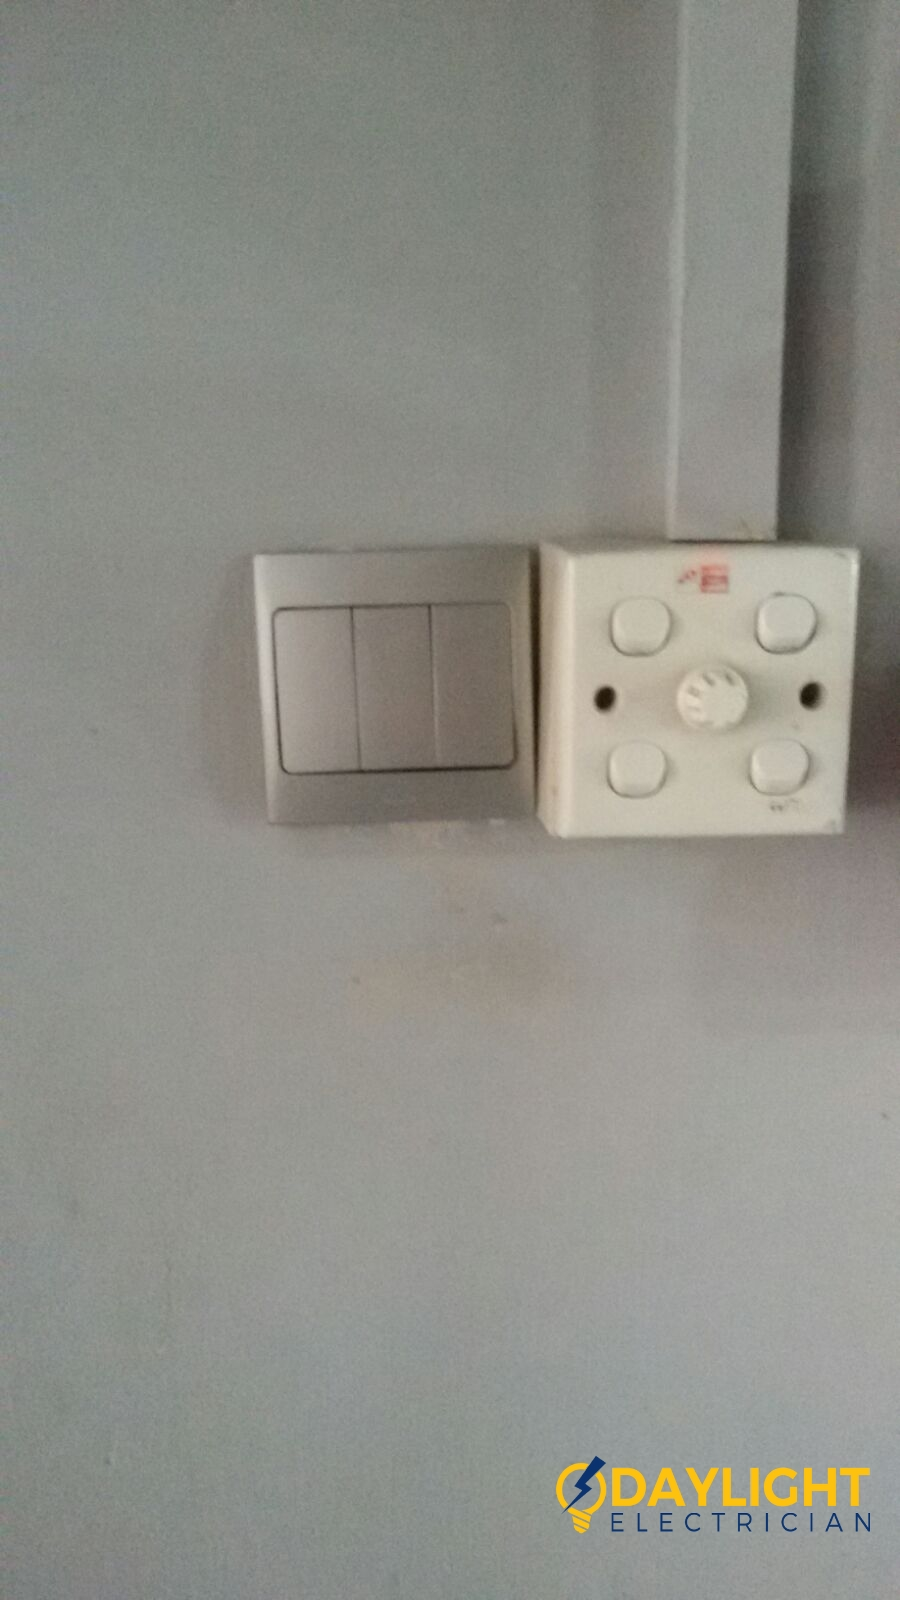 Replace Light Switch Electrician Singapore Bedok HDB - Electrician ...